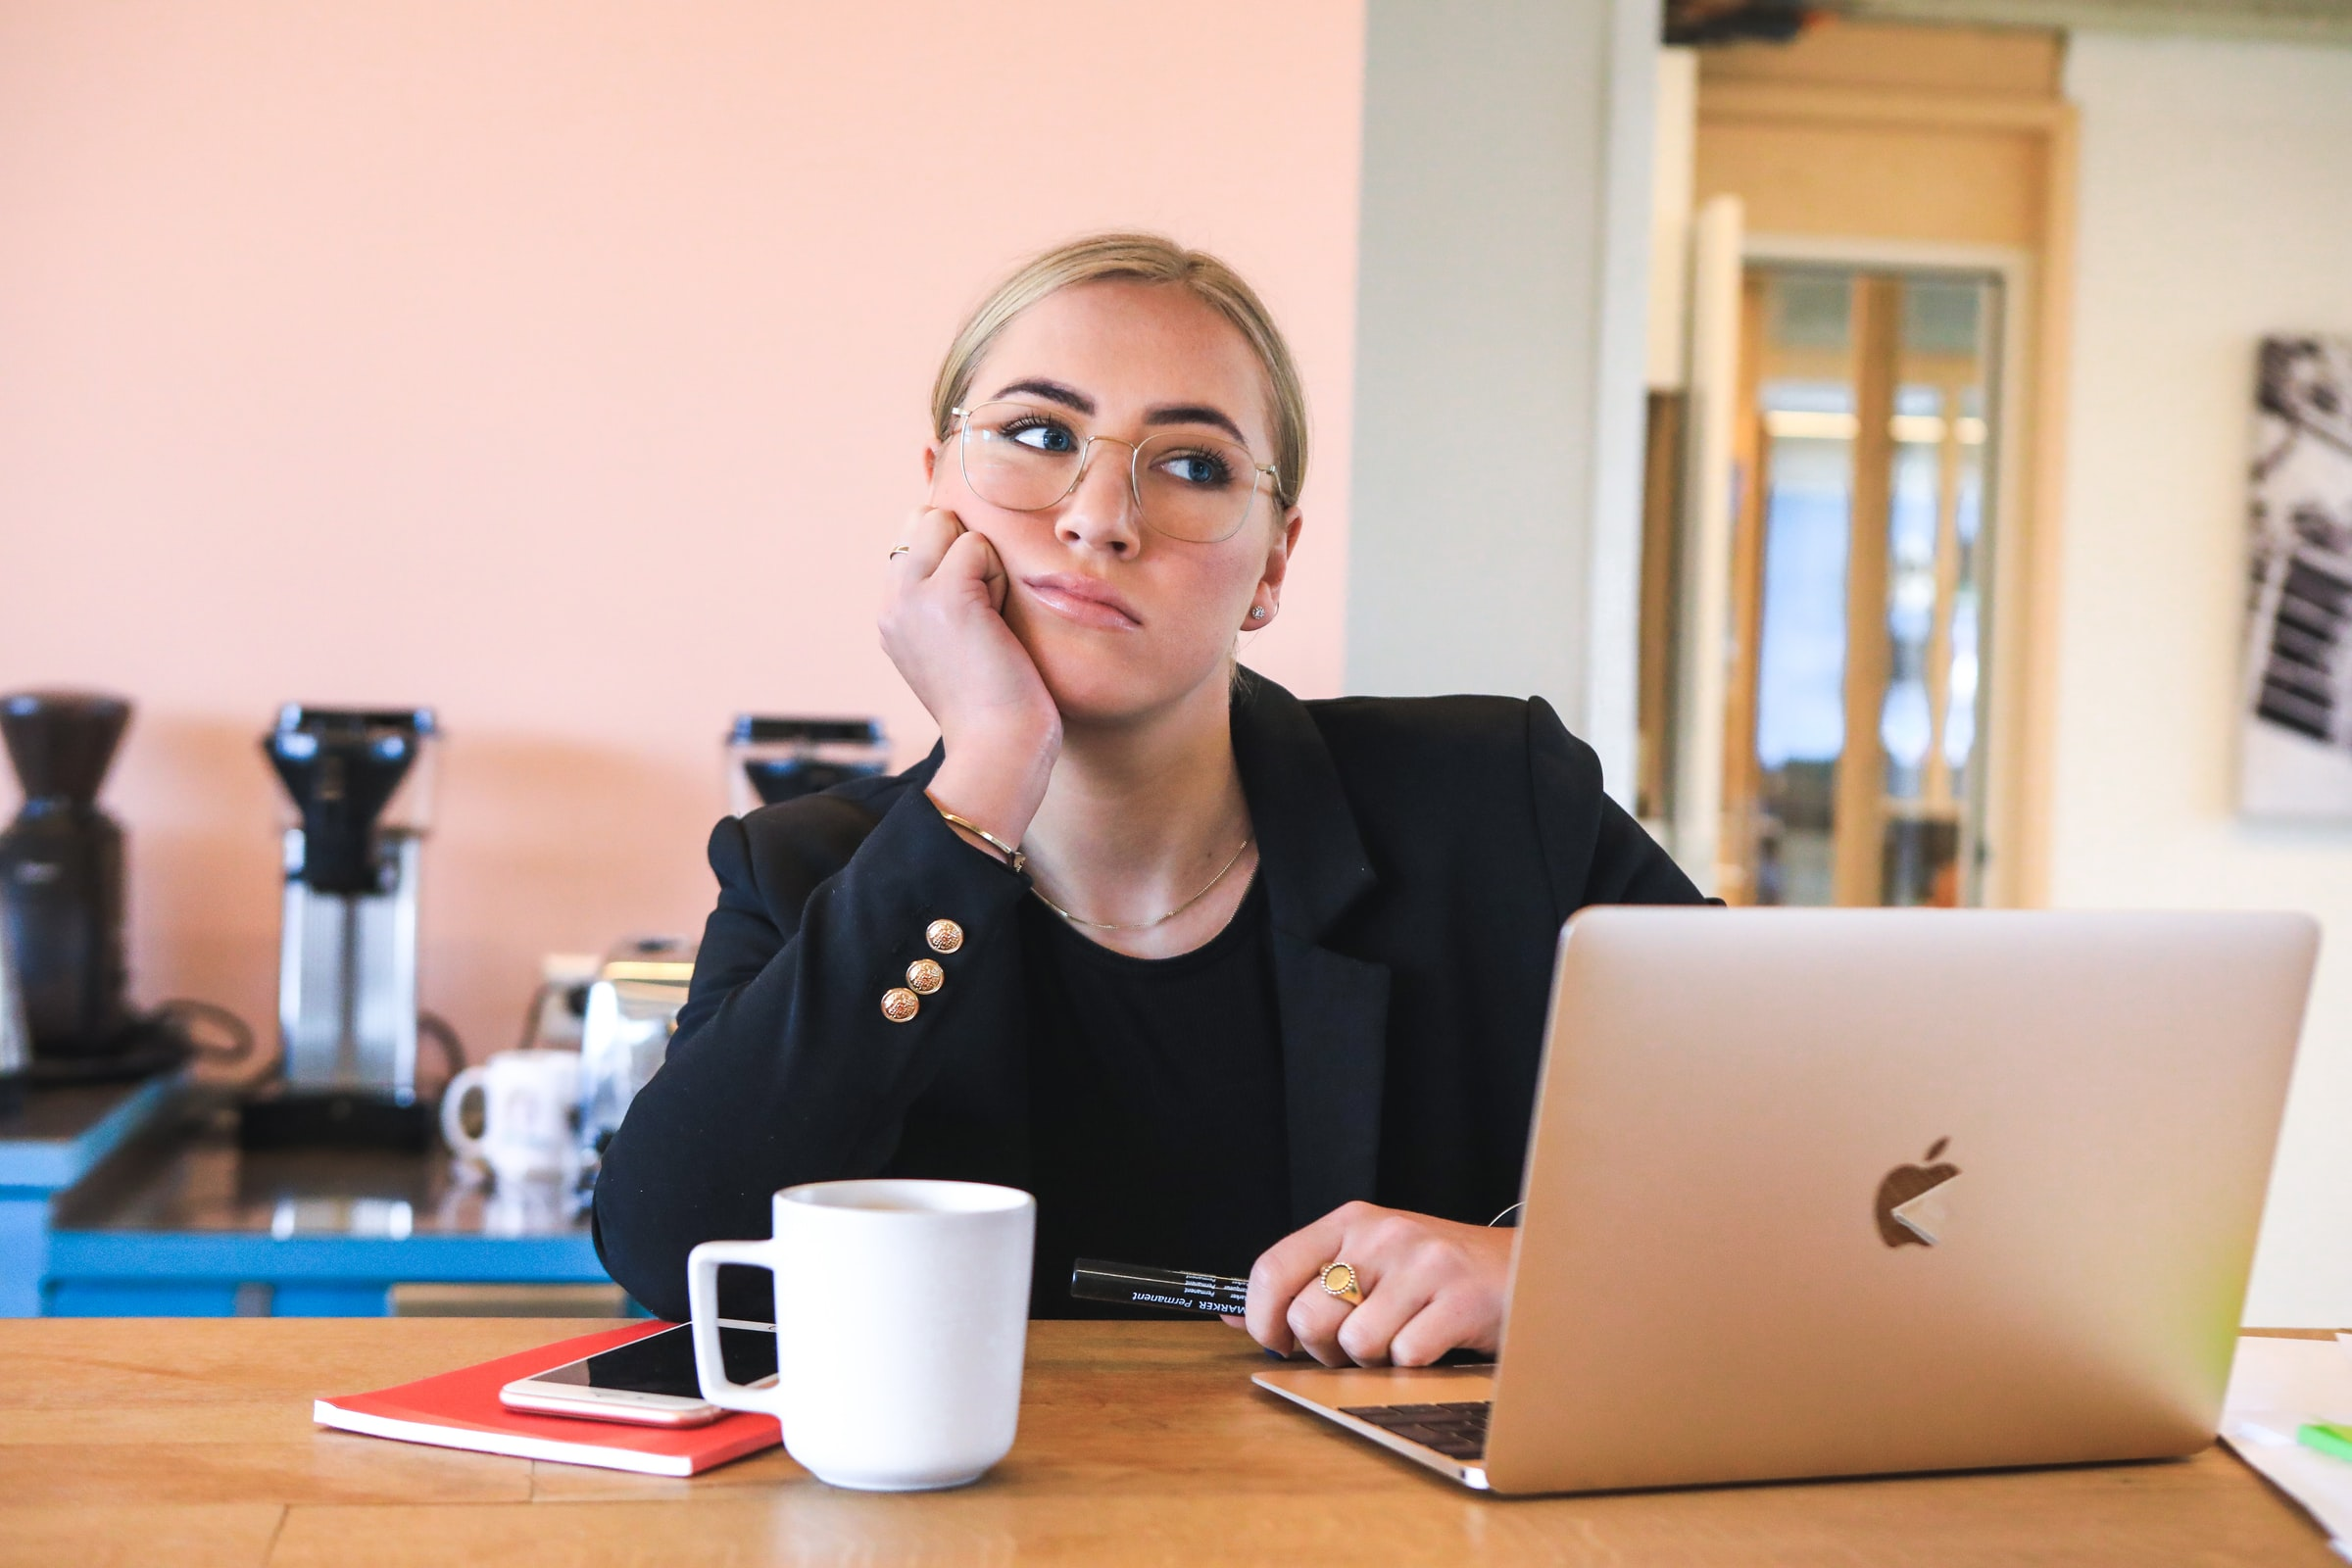 Distracted woman sitting at desk with laptop and coffee cup